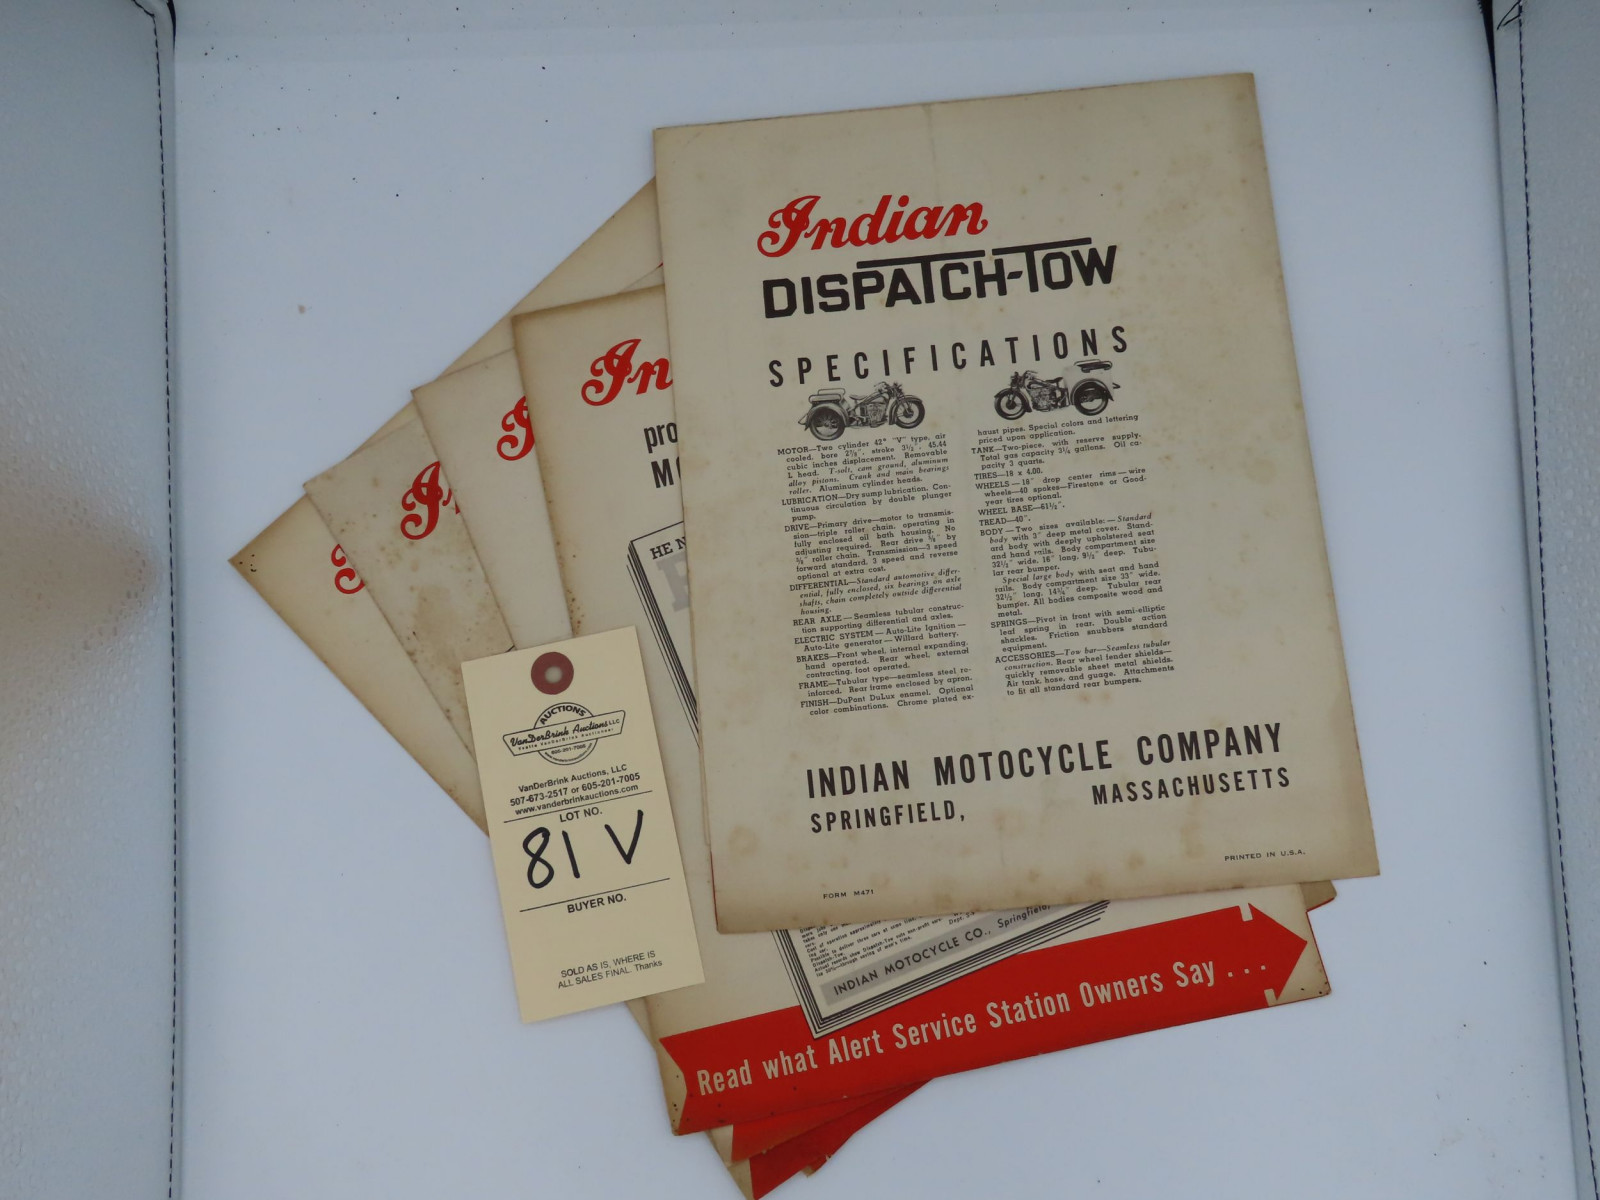 Indian Dispatch-Tow advertising - Image 3